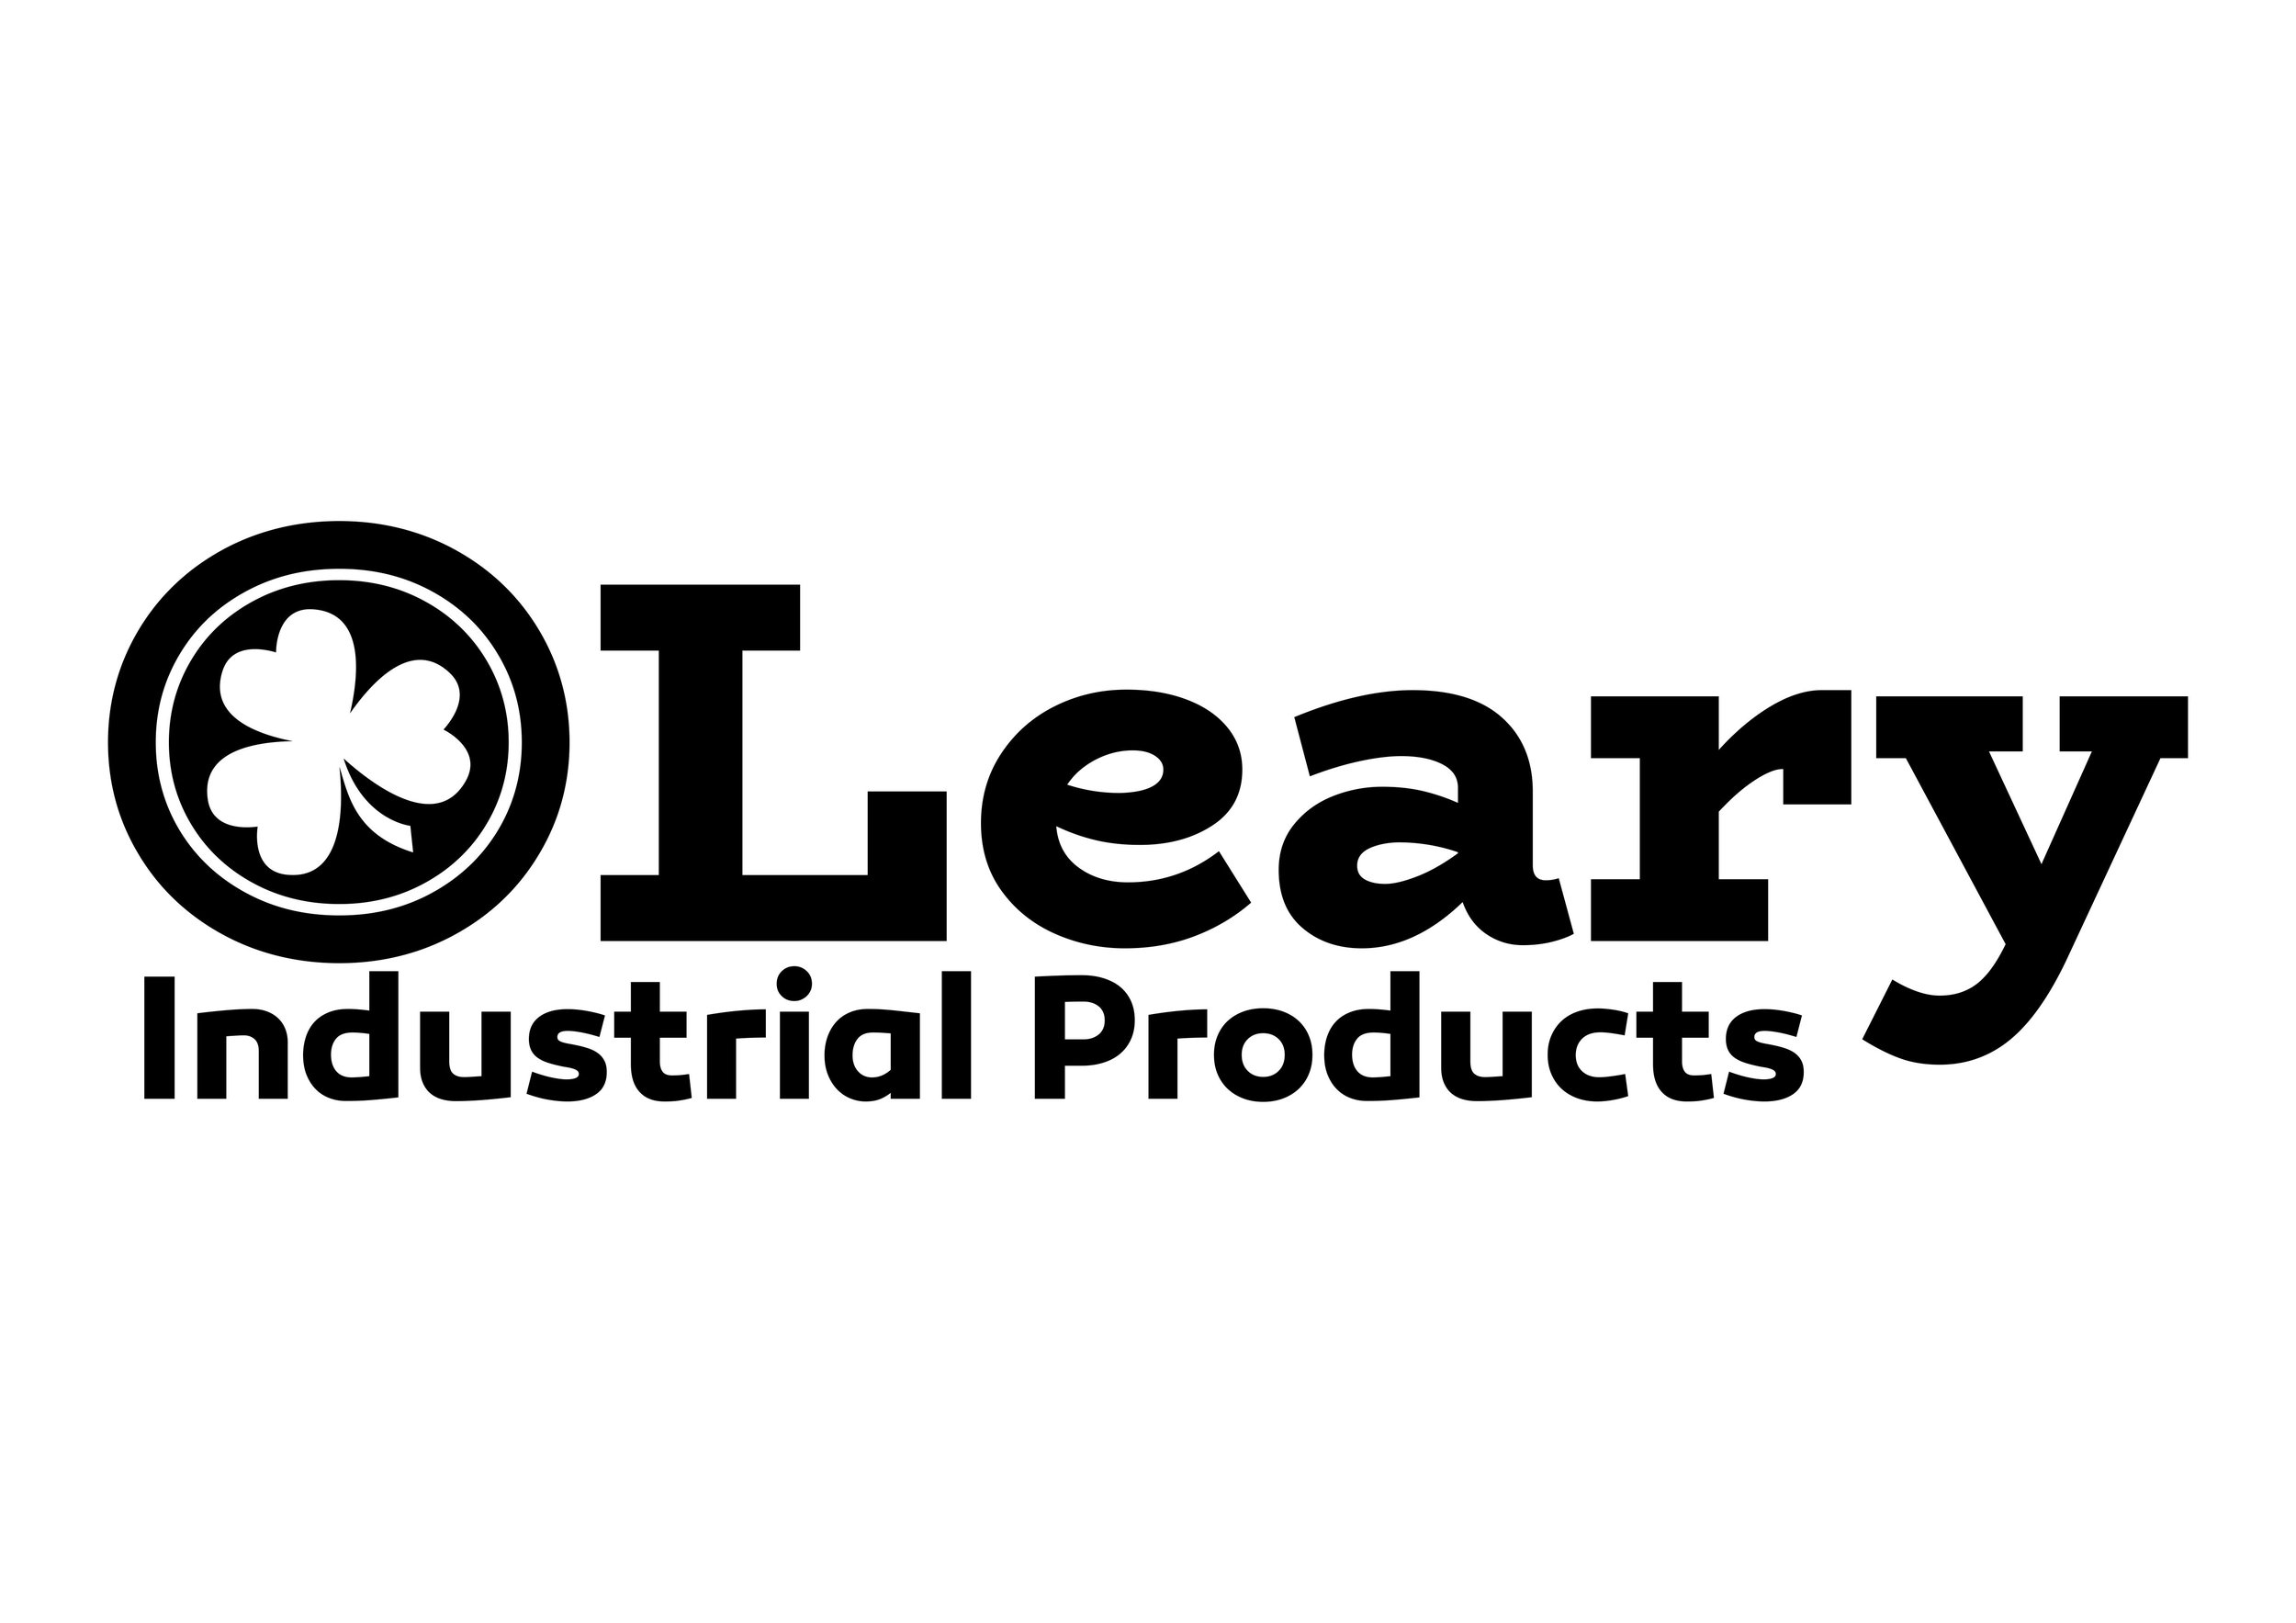 OLeary_Industrial_Products_B.jpg